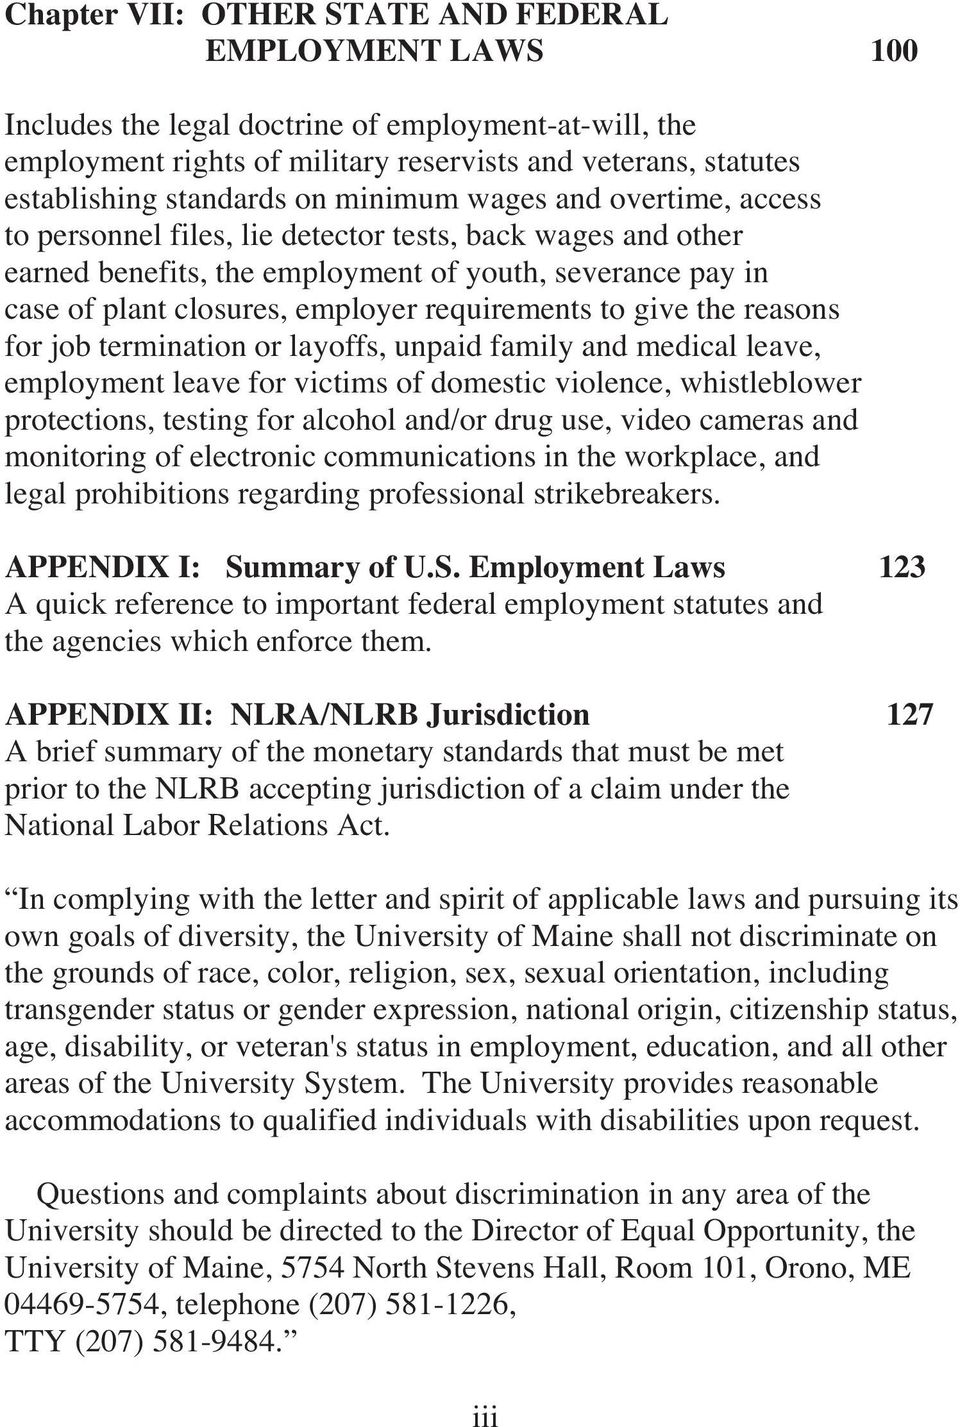 requirements to give the reasons for job termination or layoffs, unpaid family and medical leave, employment leave for victims of domestic violence, whistleblower protections, testing for alcohol